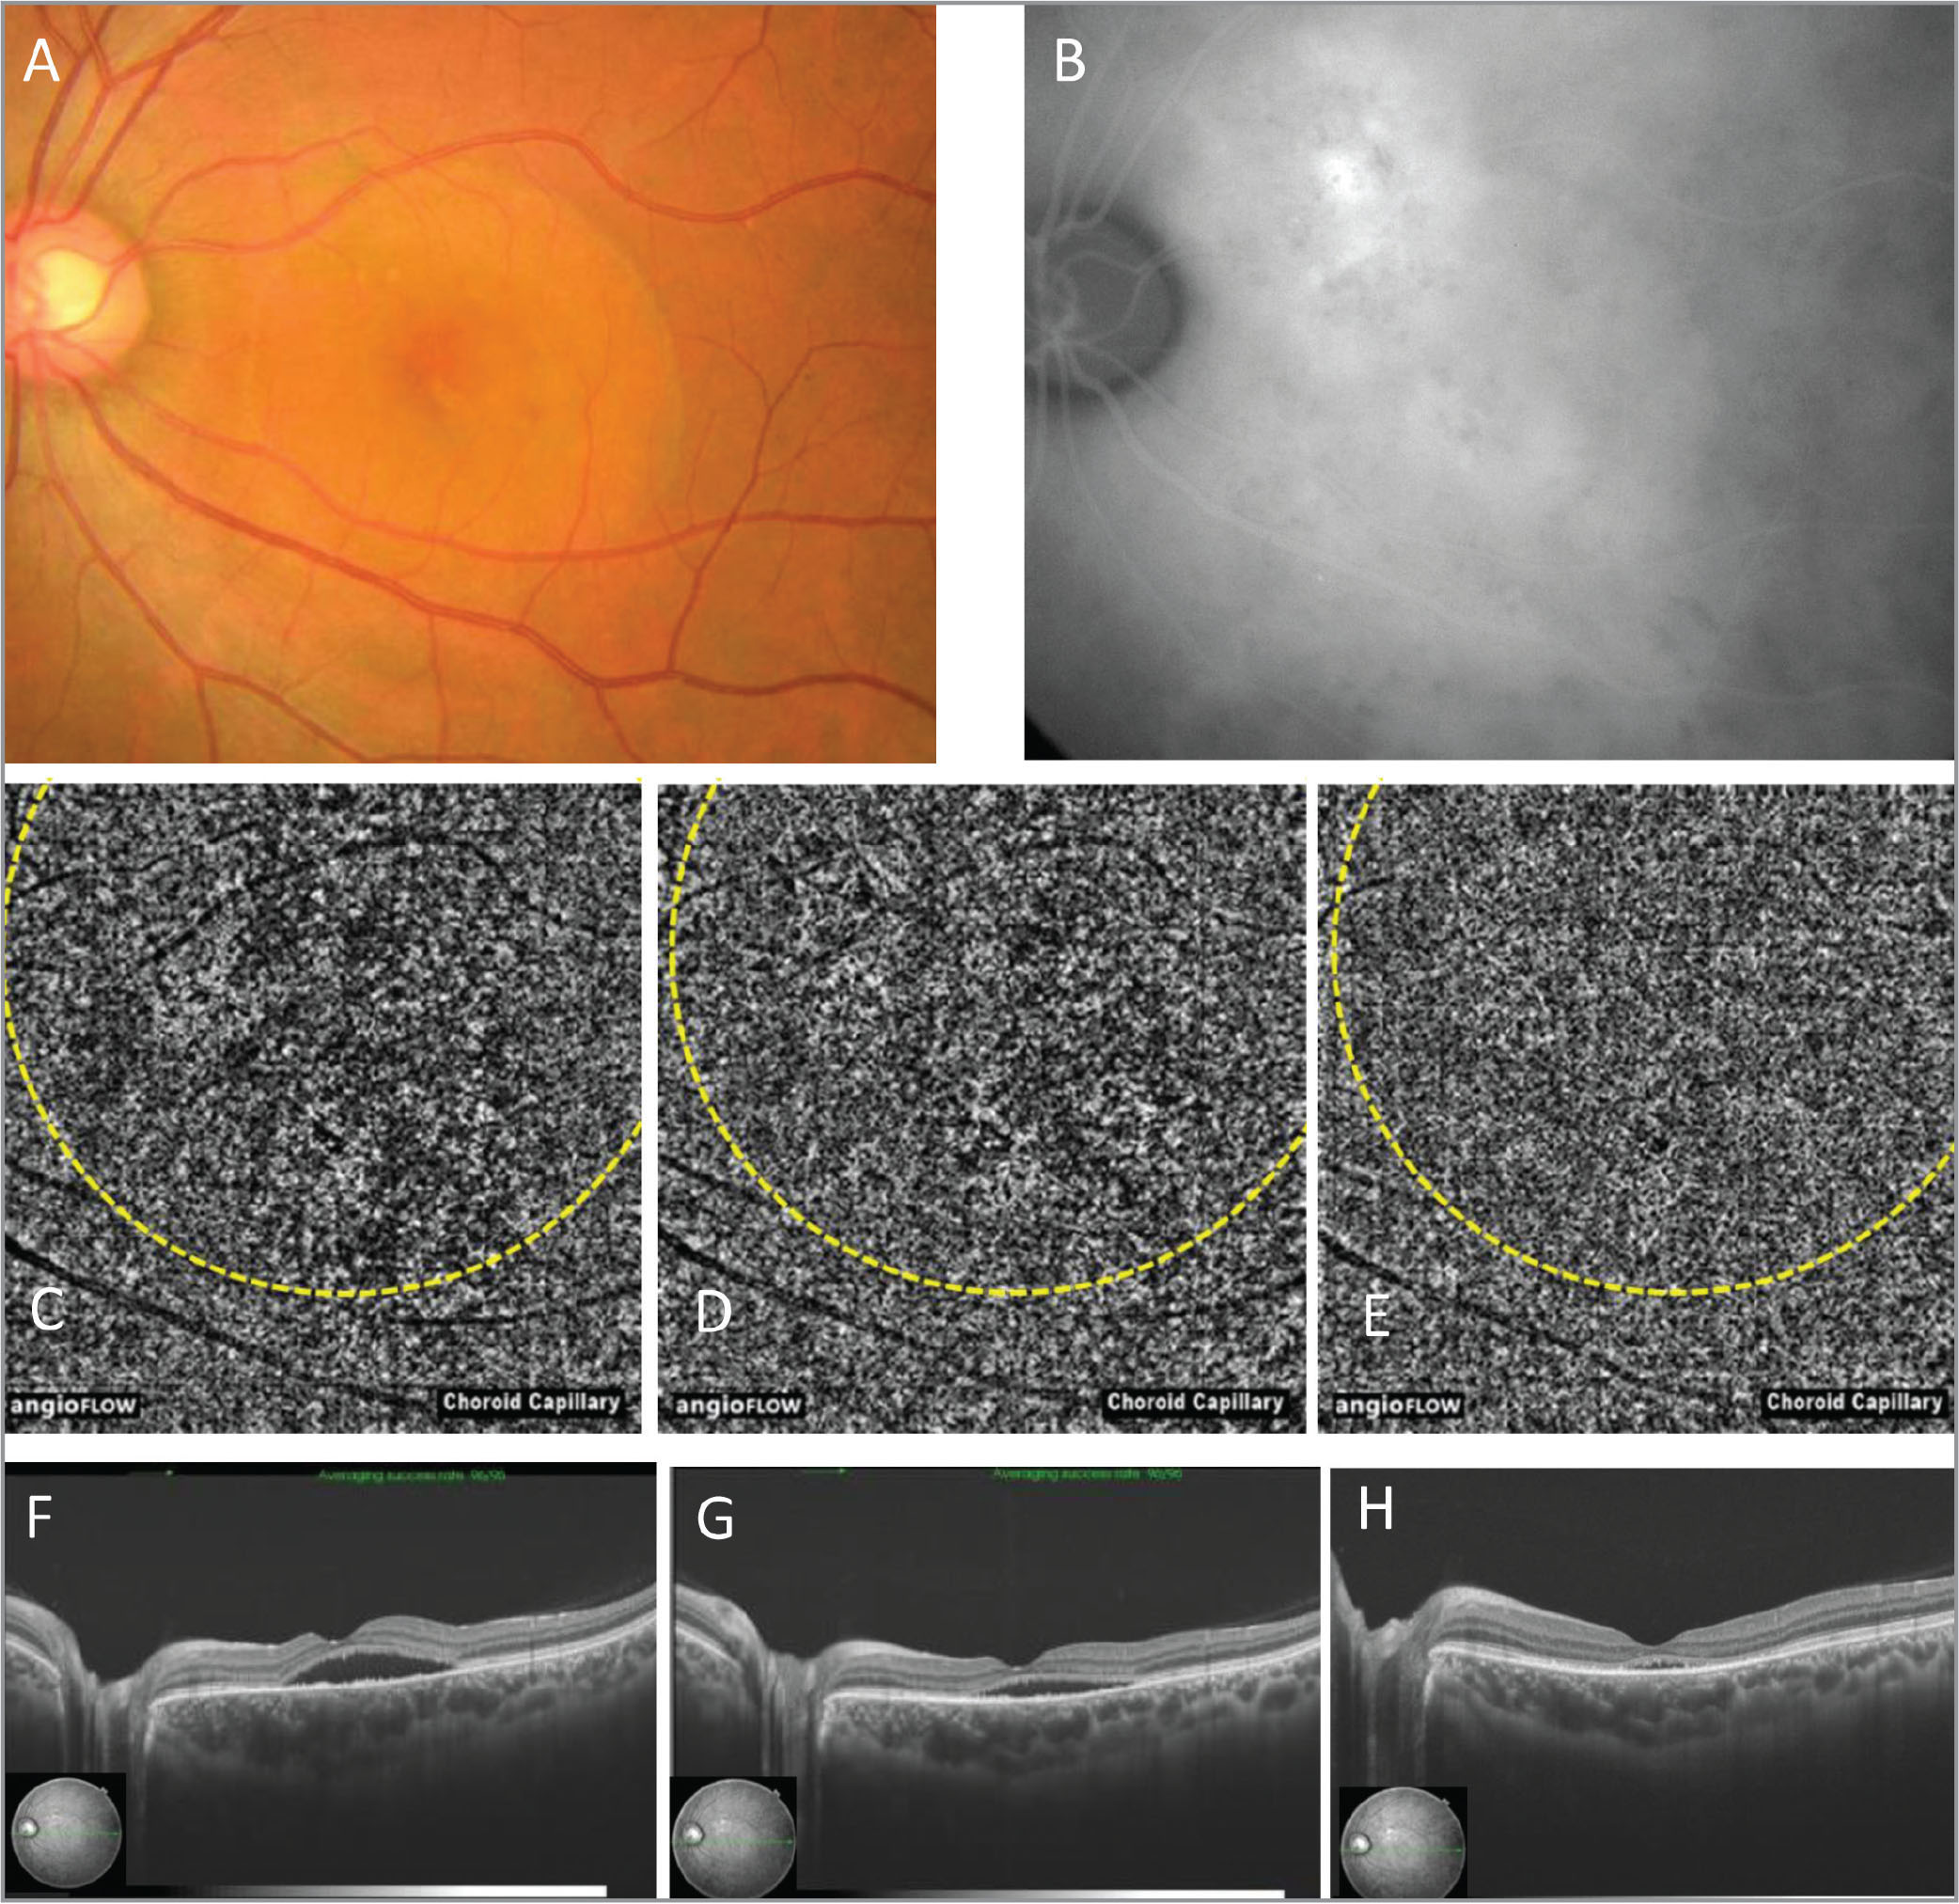 A;Multimodal imaging of the left eye of Case 4. (A) Color fundus photograph. (B) Middle phase of indocyanine green angiography. (C–E) Optical coherence tomography angiography (OCTA) before photodynamic therapy (PDT) (C), 1 week after PDT (D), and 1 month after PDT (E). The PDT spot area is encircled by yellow dots. Before PDT, focal high-intensity lesion indicating abnormal choroidal vessels and flow void lesion at the choriocapillaris layer are observed (C). These findings are diminished progressively at 1 week and 1 month after PDT (D, E). (F–H) OCT before PDT (F), 1 week after PDT (G), and 1 month after PDT (H). In this case, fluorescein angiography was not conducted due to fluorescein allergy.